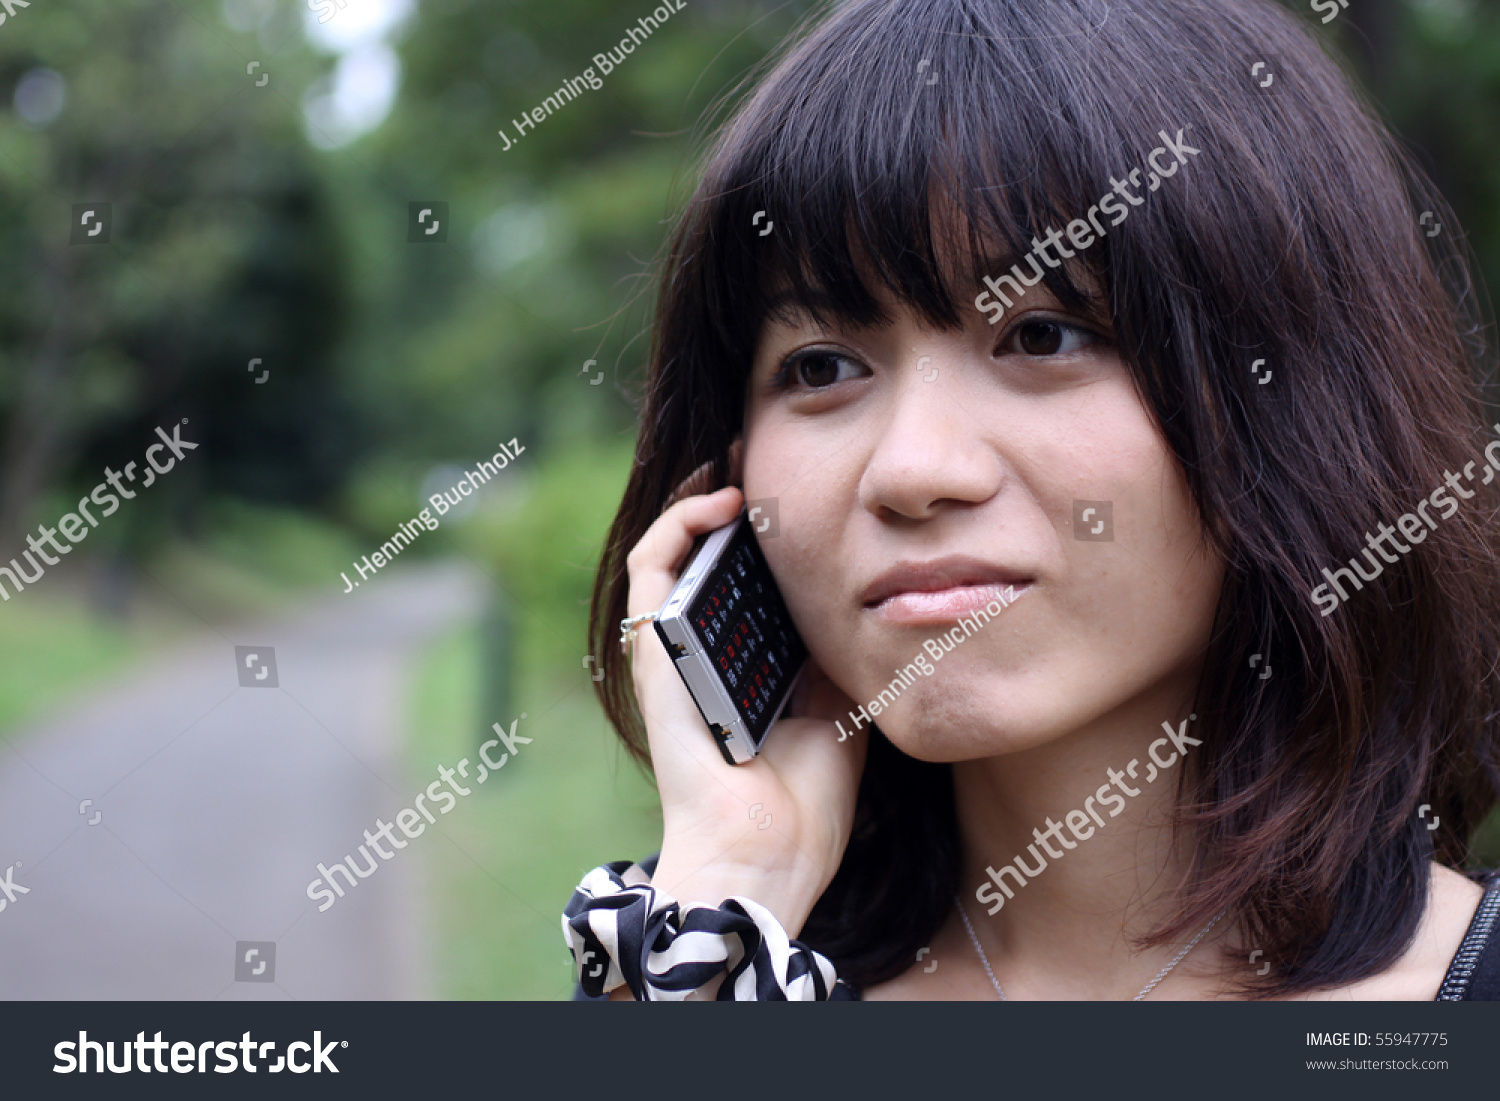 beautiful japanese girl on cellphone outdoors stock photo (edit now